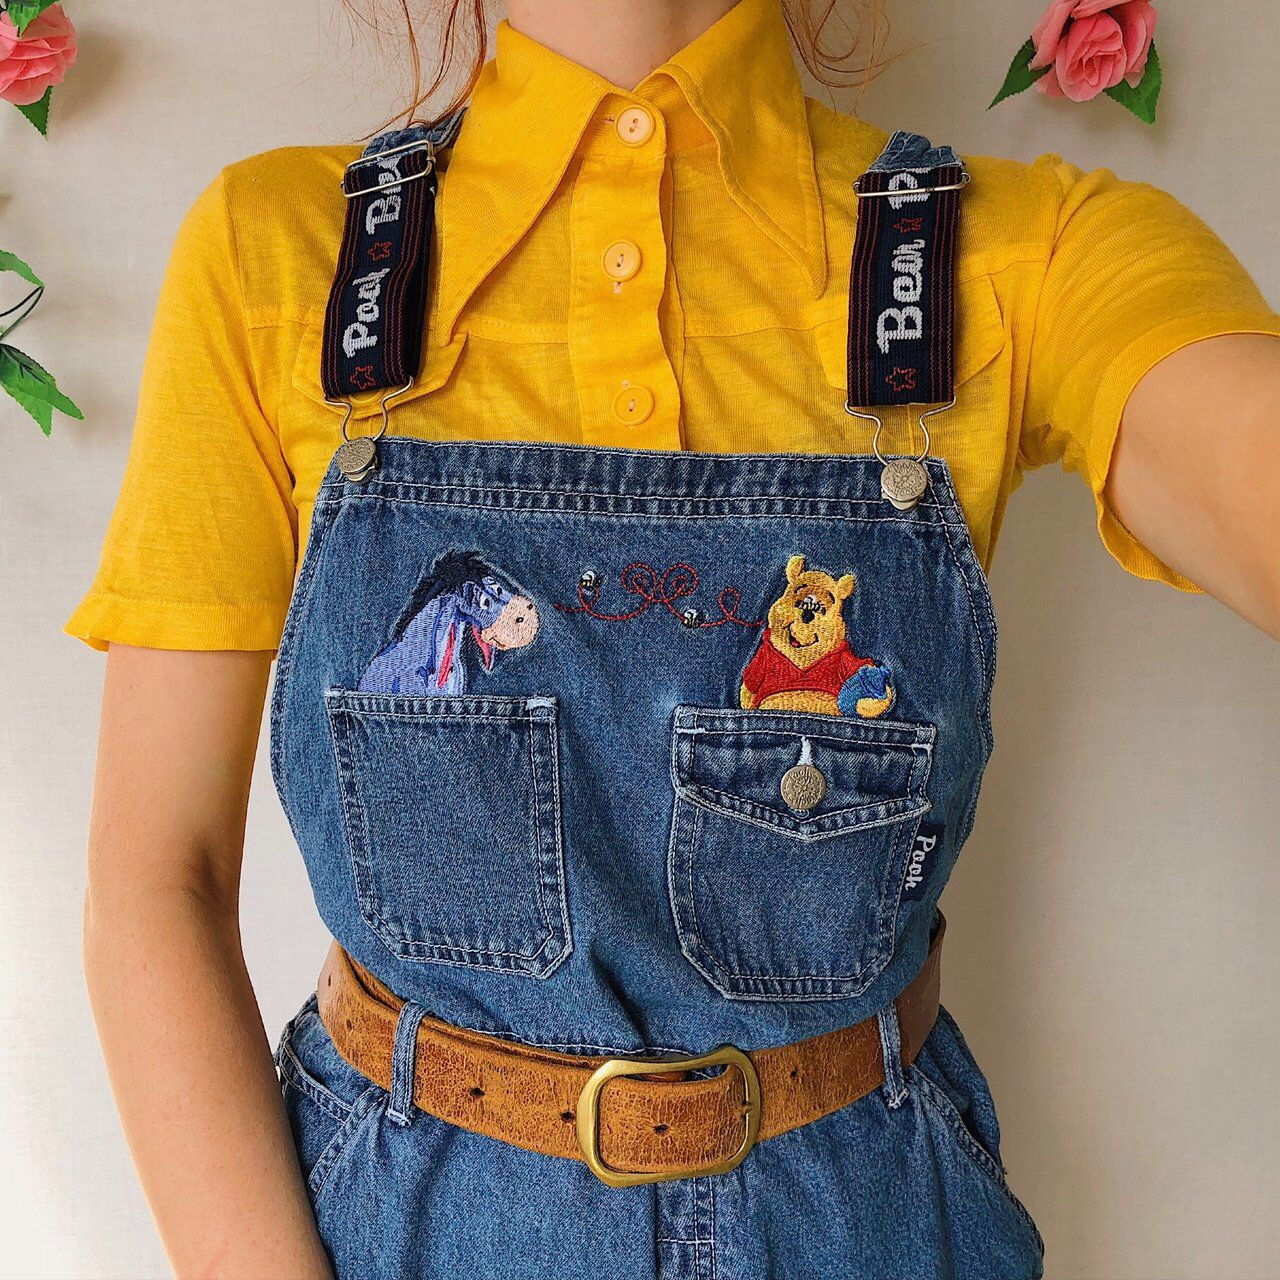 7da367175 Pin by Maddi on depop in 2019 | Retro outfits, Fashion, Outfits